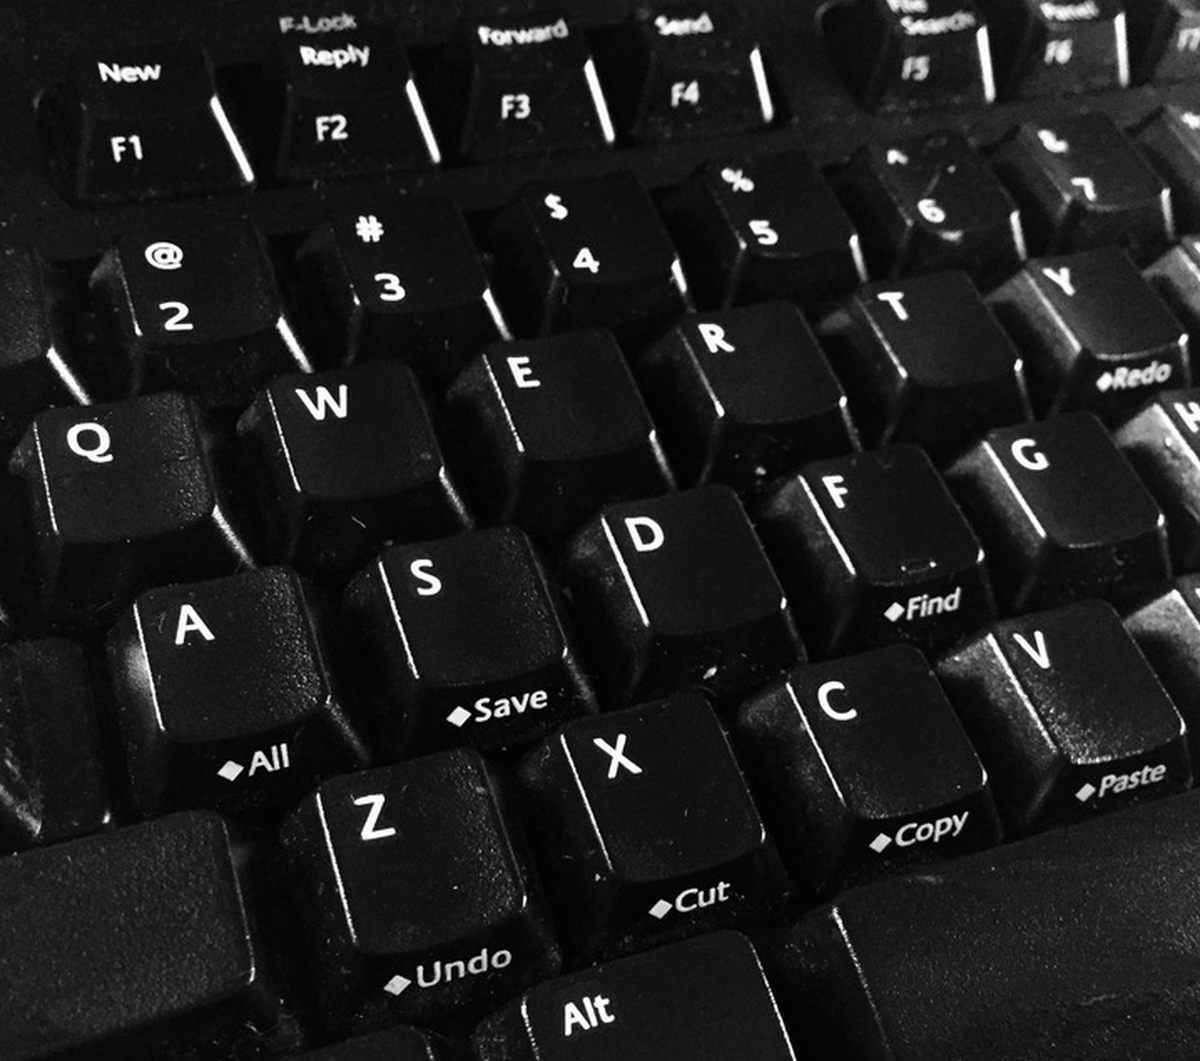 RT @hitRECord  It's time to get typing! A new #WeeklyWritingChallenge has been unleashed -- http://t.co/VIJn9tFHaE http://t.co/cvjd6btr4K